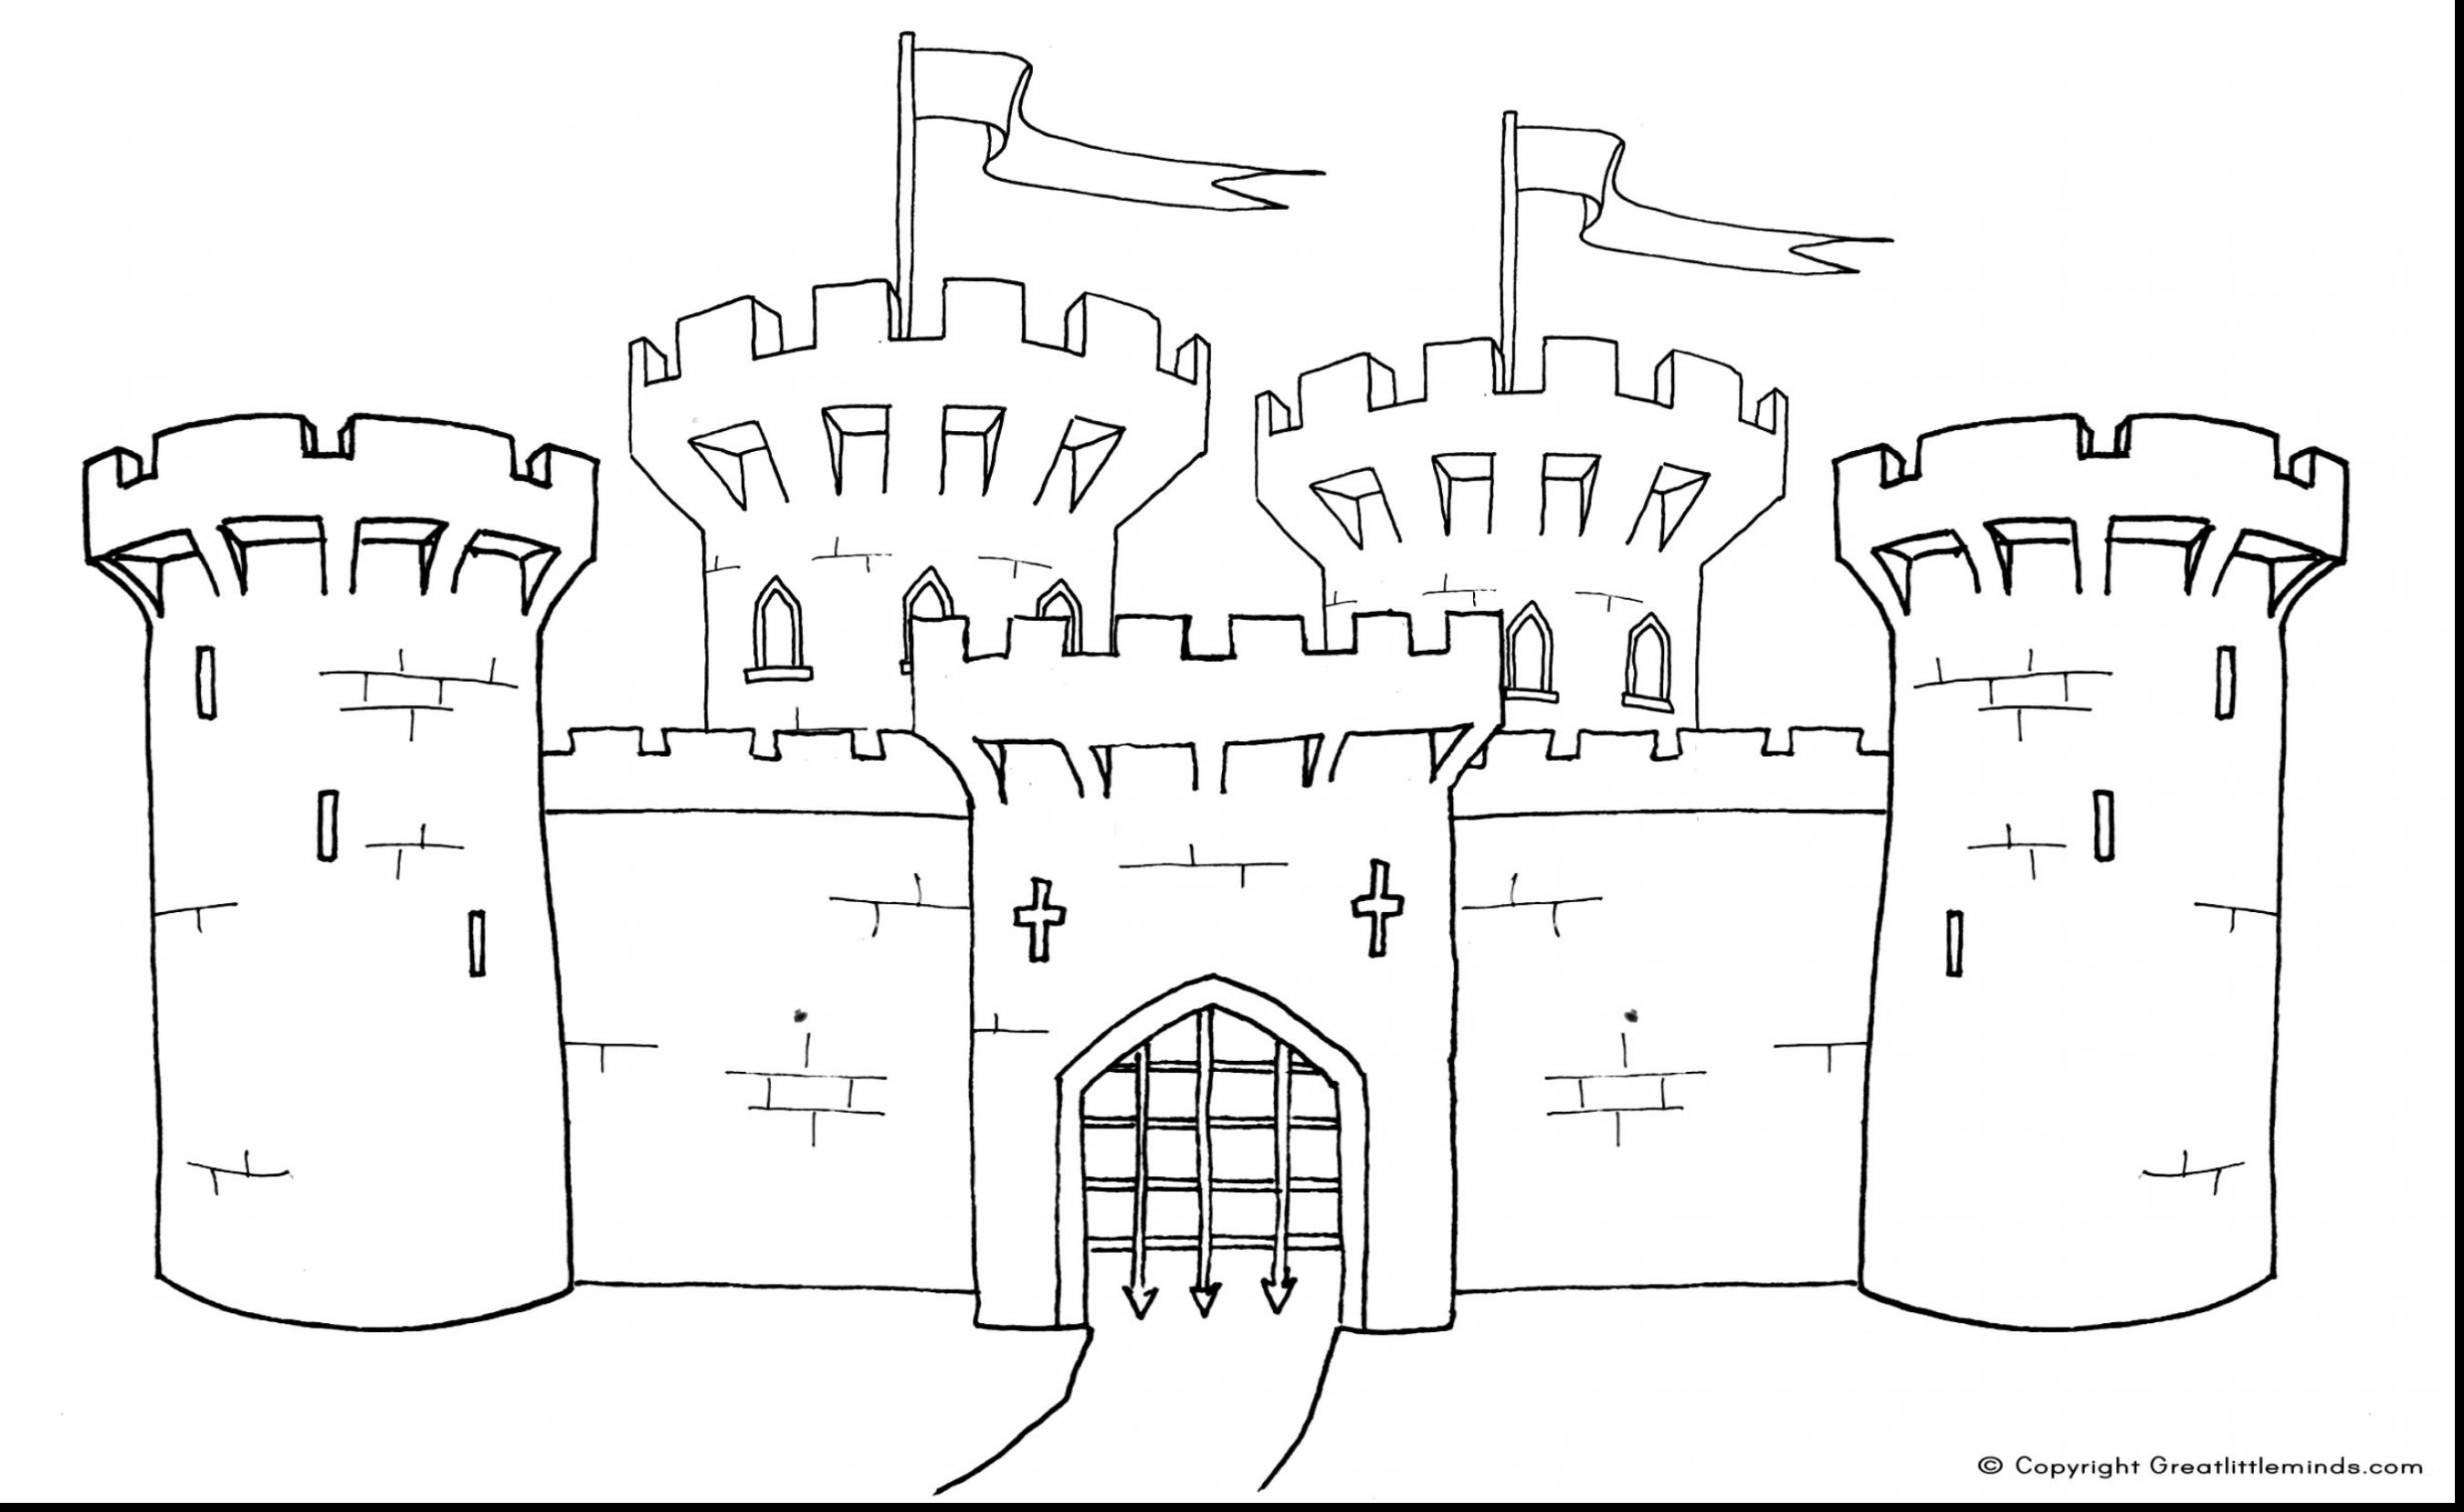 Magnificent Castle clipart #4, Download drawings